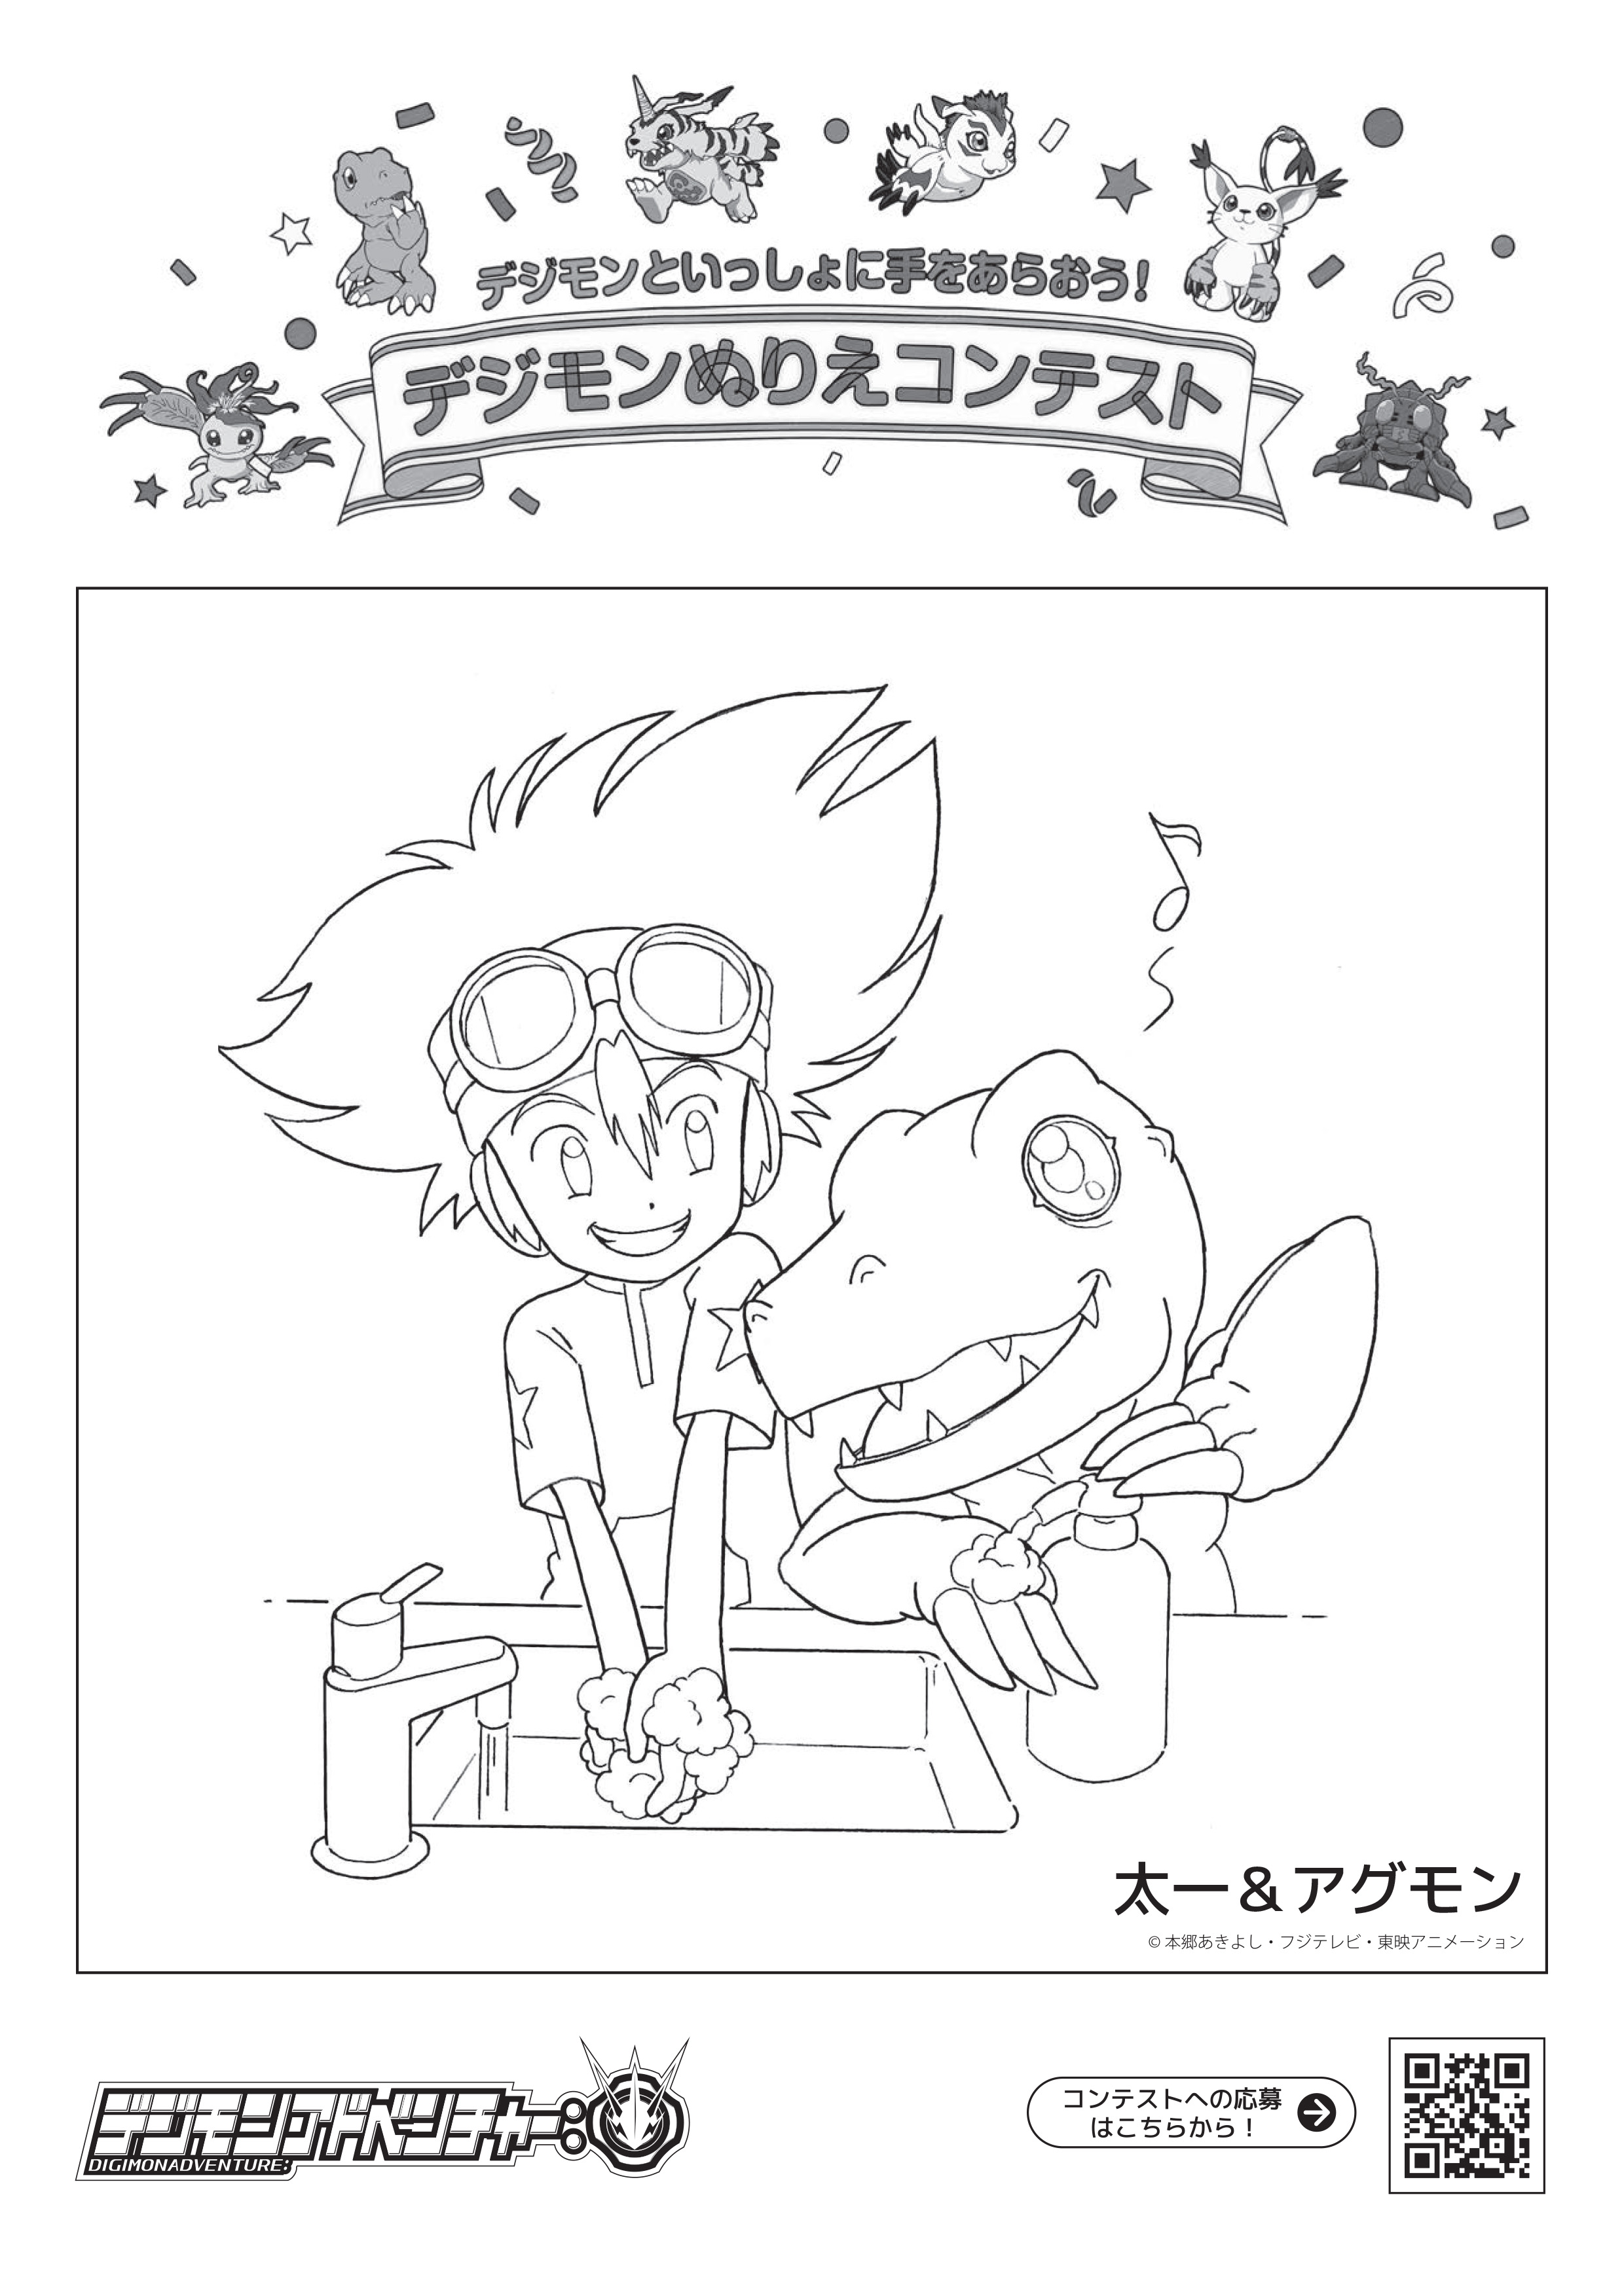 Digimon Coloring Pages 89 Coloring Page - Free Digimon Coloring Pages :  ColoringPages101.com | 3507x2480